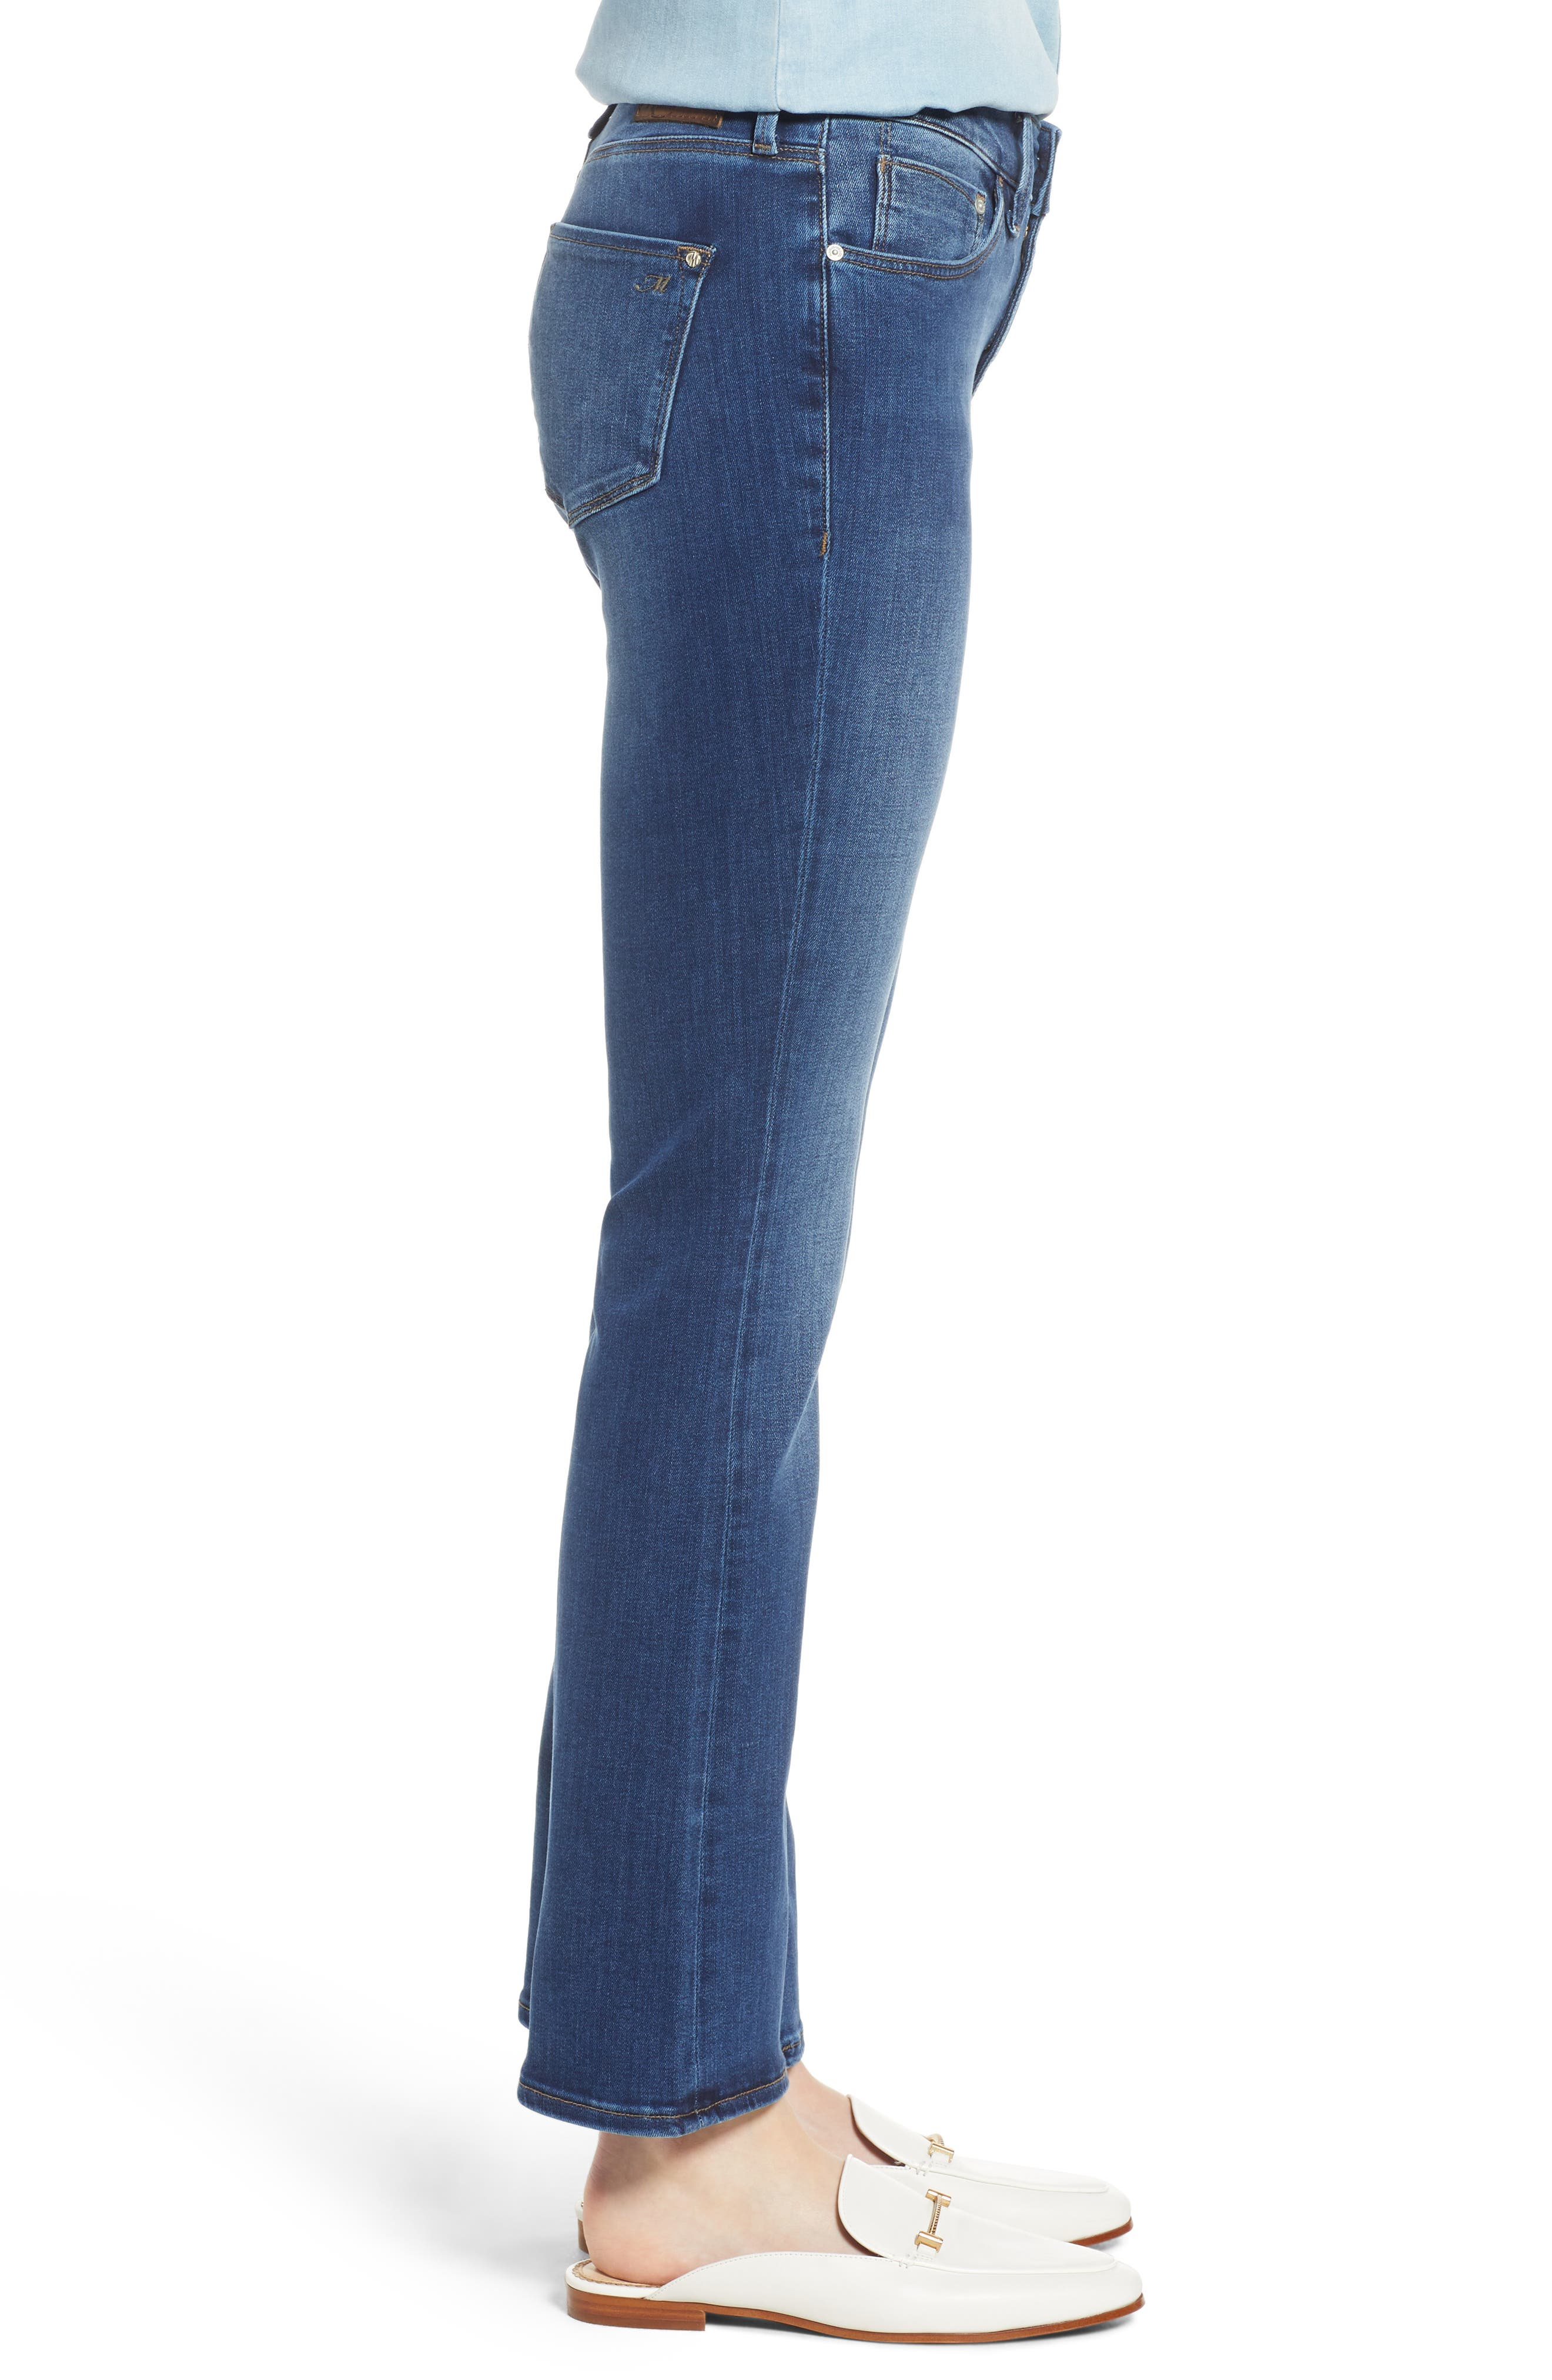 Molly Classic Bootcut Jeans,                             Alternate thumbnail 3, color,                             INDIGO SUPERSOFT